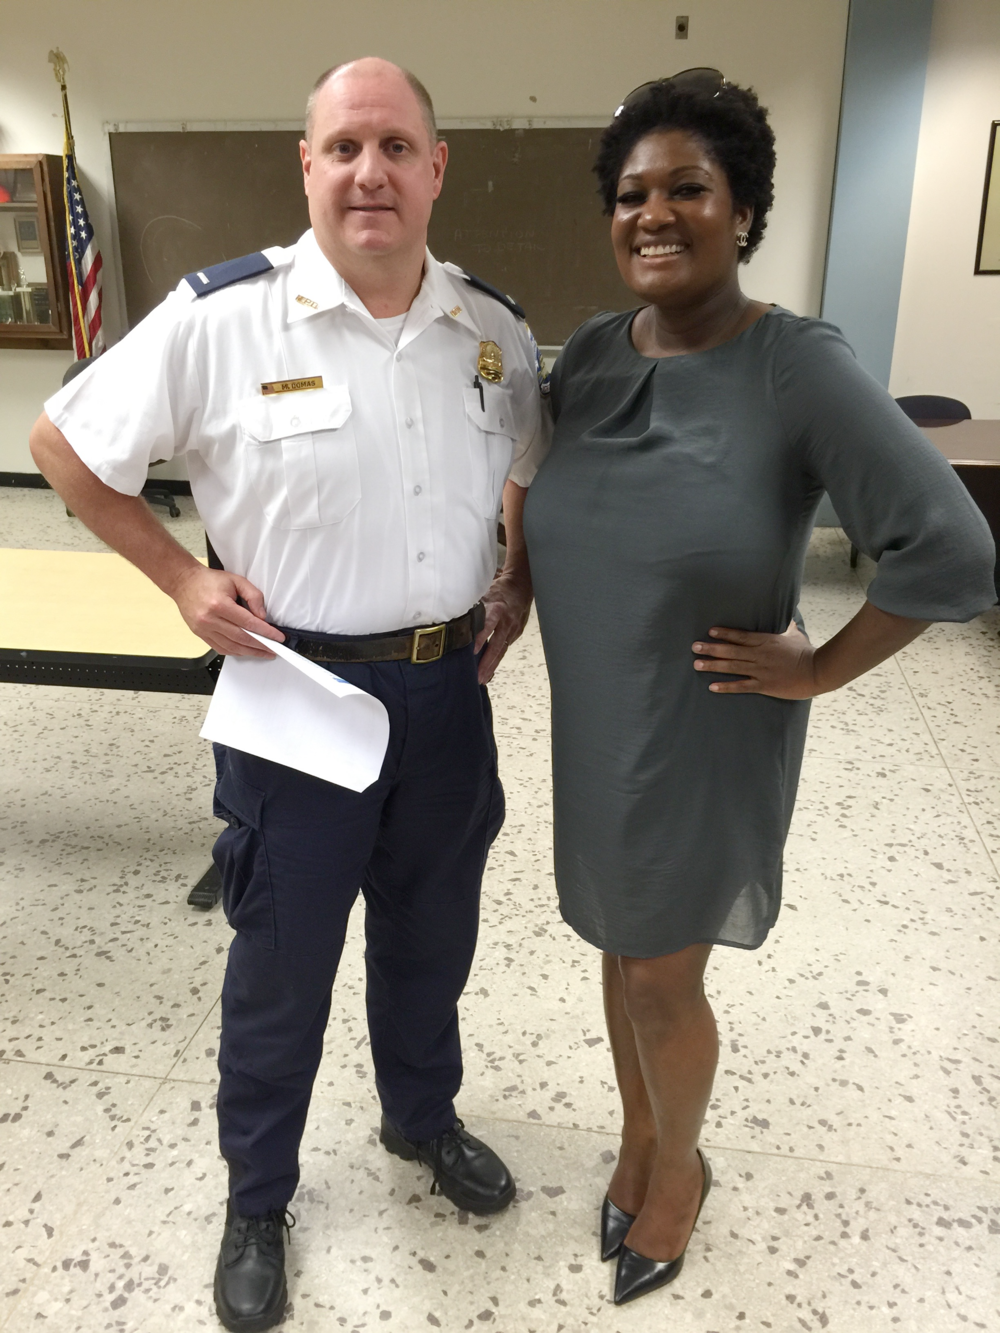 Attending PSA402 Meeting w/Lt Domas discussing crime reports and what we can do as a community to help deter crime.